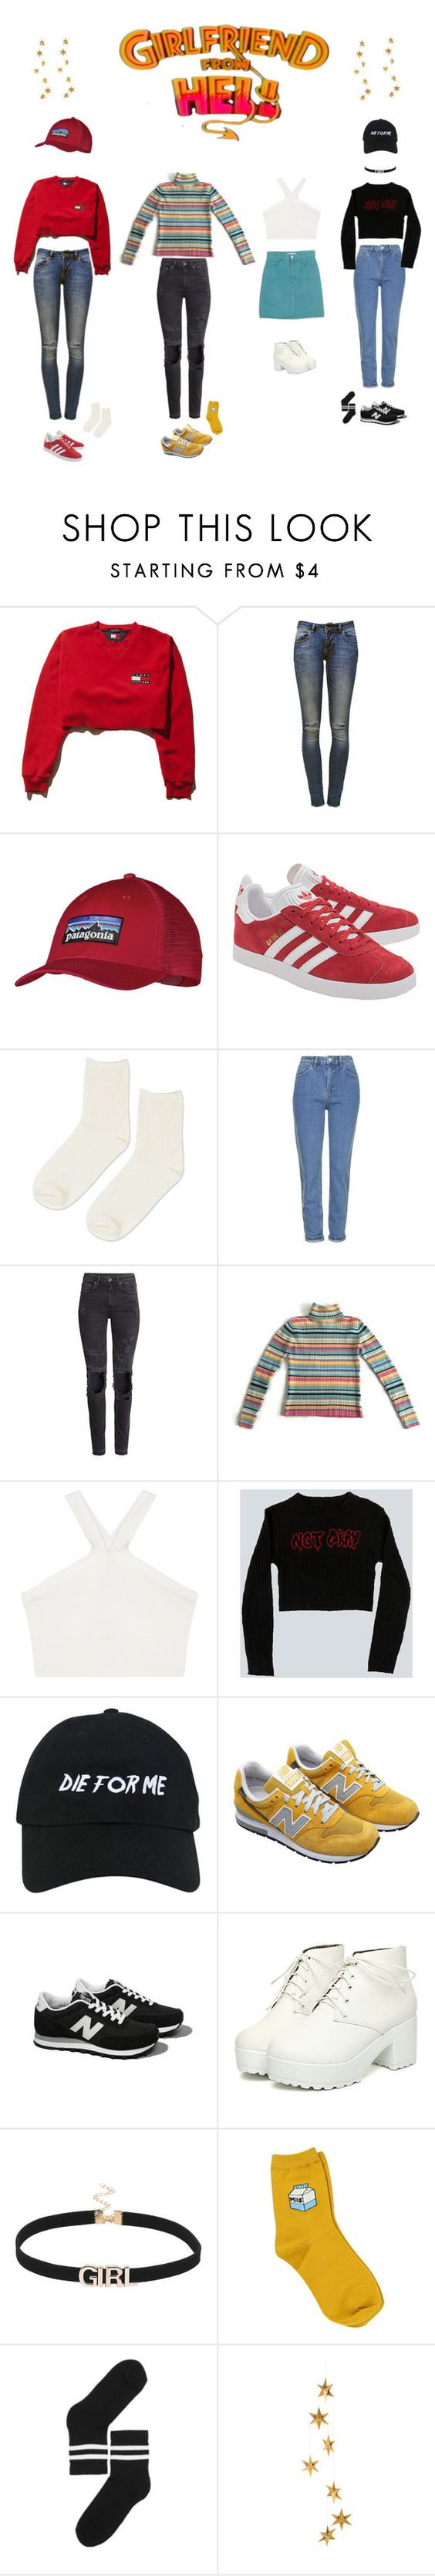 """""""girlfriend from hell!"""" by flowerofevil ❤ liked on Polyvore featuring Anine Bing, Patagonia, adidas Originals, Topshop, H&M, BCBGMAXAZRIA, GUESS, Nasaseasons, New Balance and Abercrombie & Fitch"""